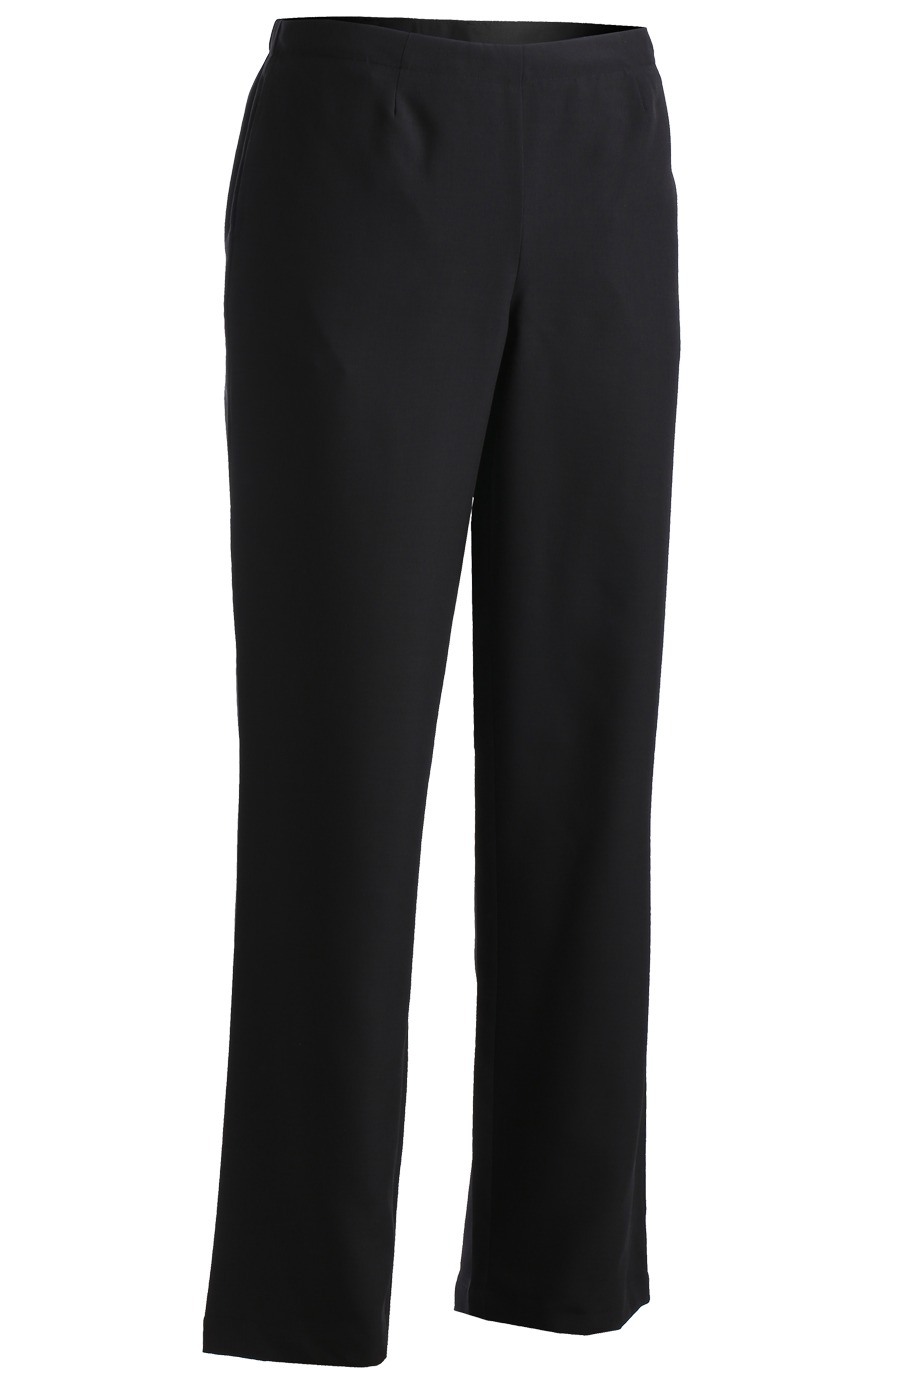 Edwards Garment 8280 - Pinnacle Housekeeping Pant